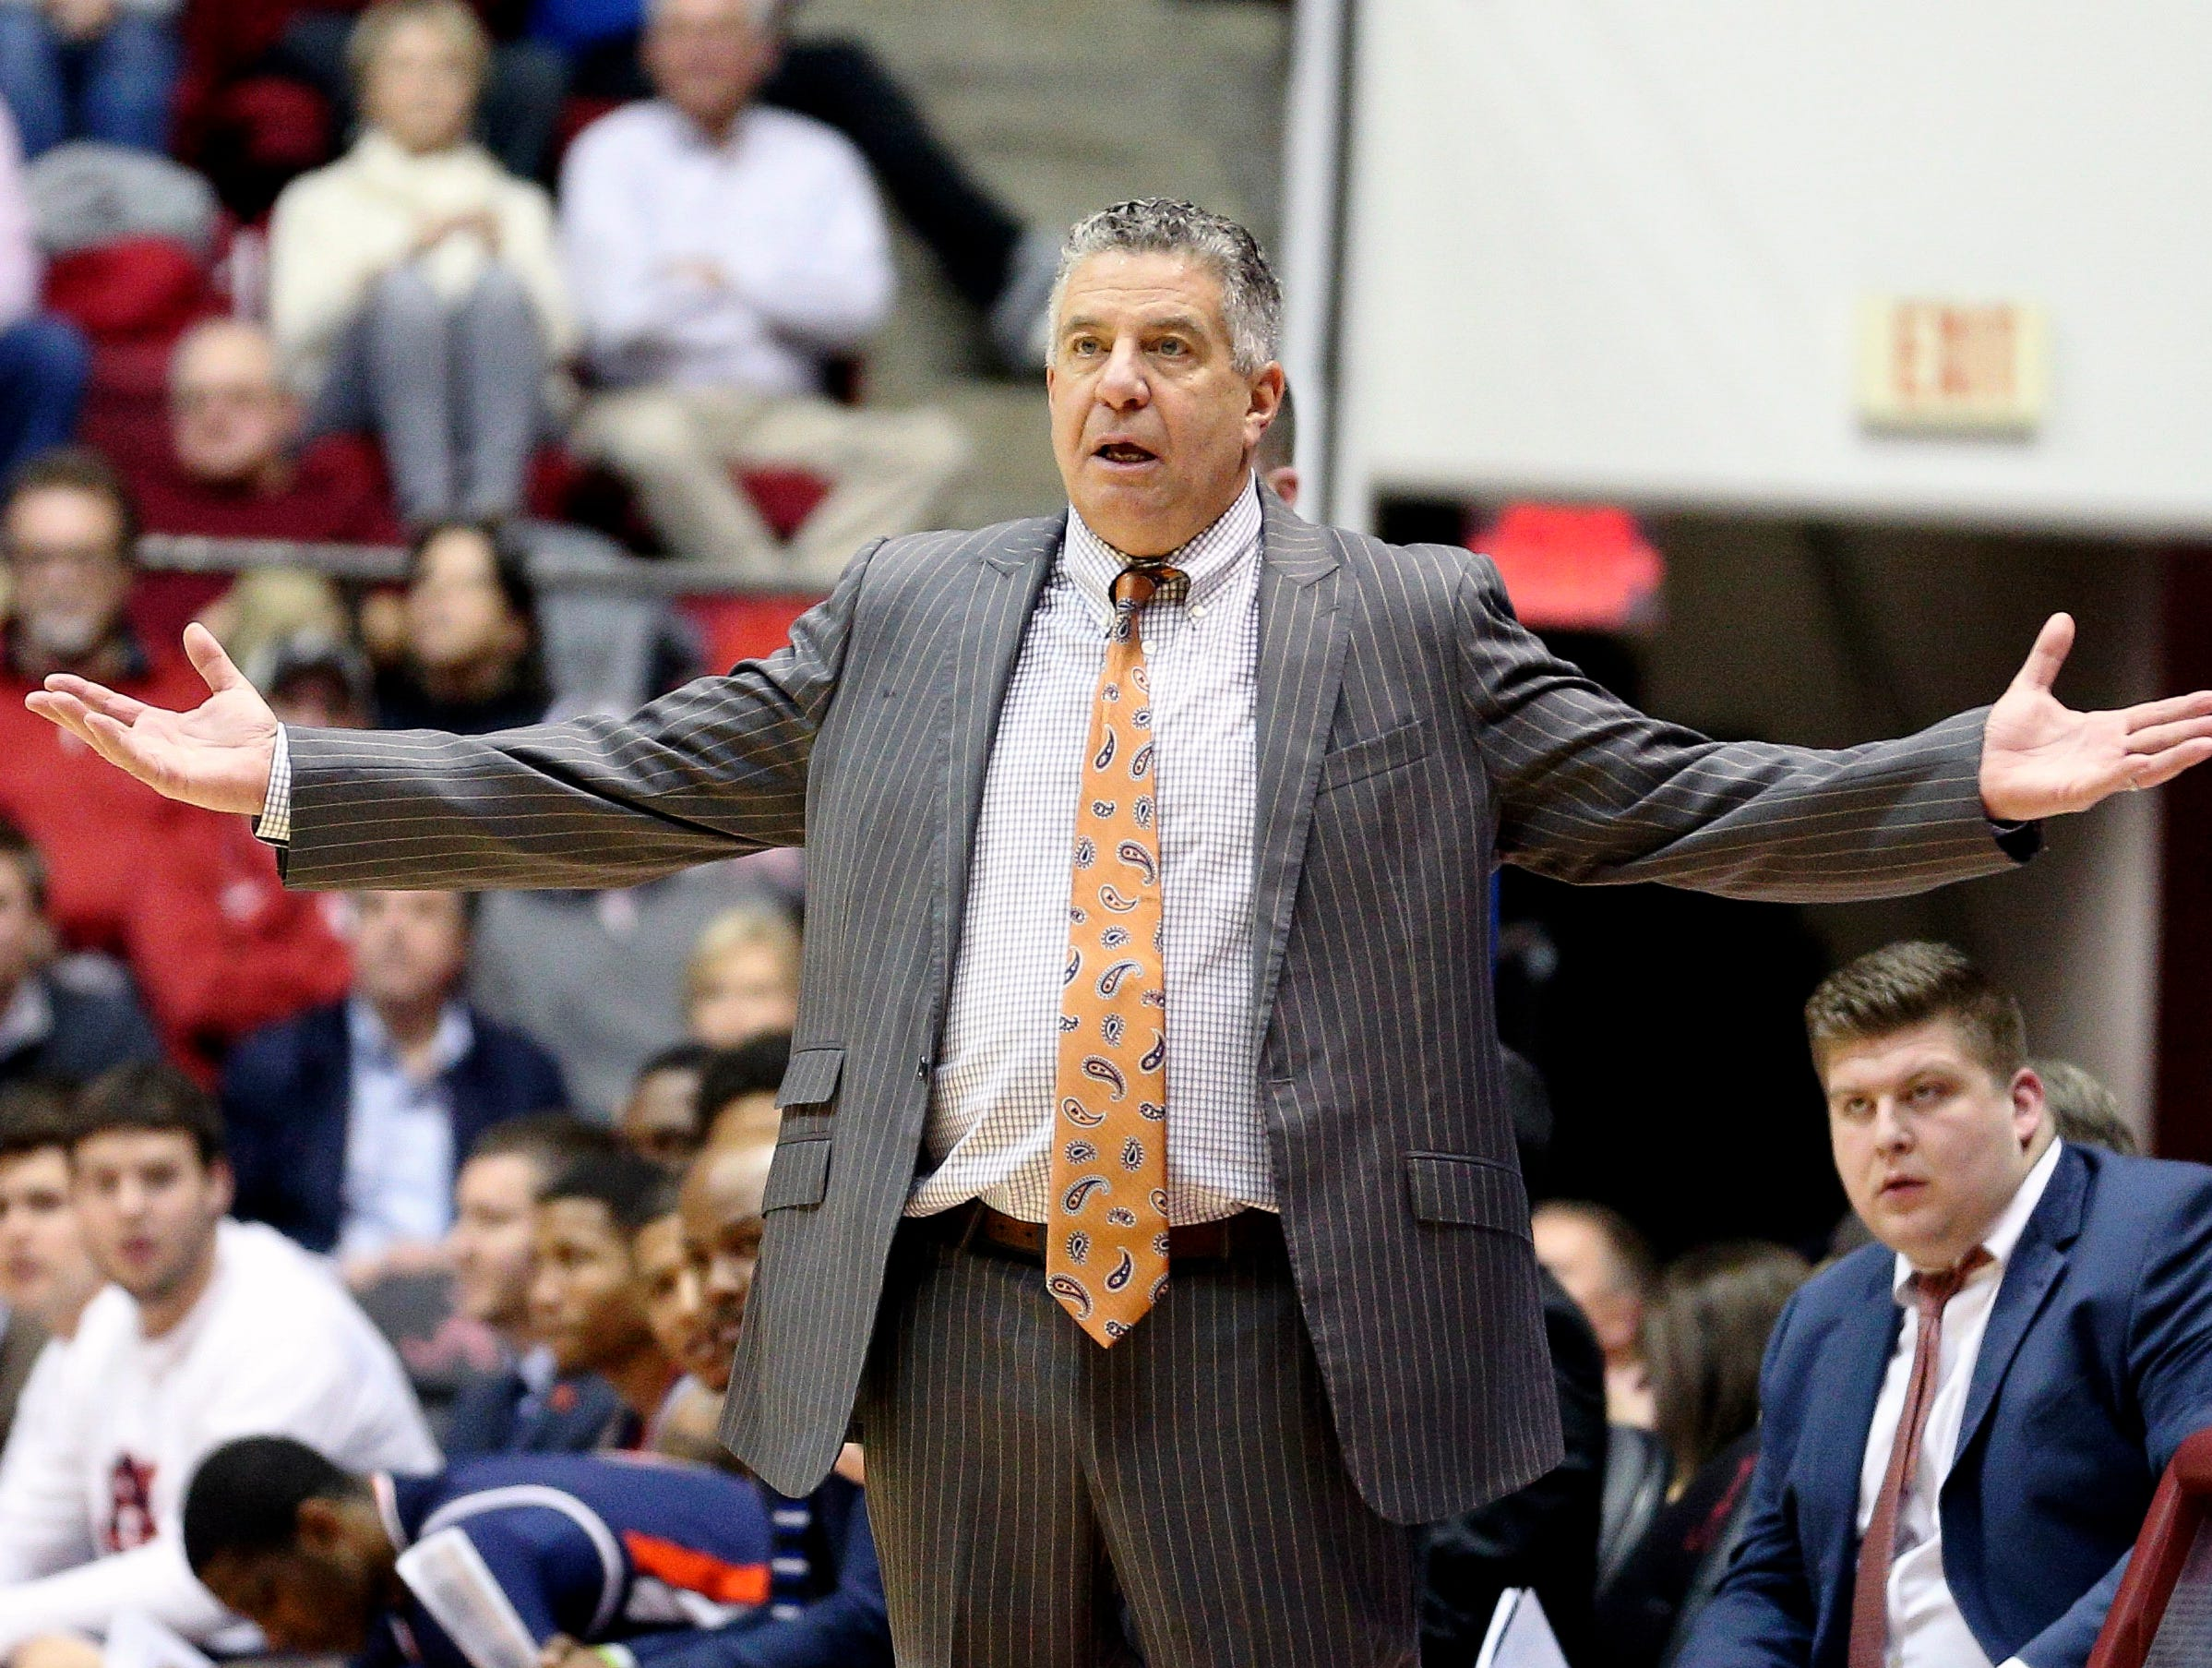 Mar 5, 2019; Tuscaloosa, AL, USA; Auburn Tigers head coach Bruce Pearl reacts to a call during the second half against Alabama Crimson Tide at Coleman Coliseum. Mandatory Credit: Marvin Gentry-USA TODAY Sports